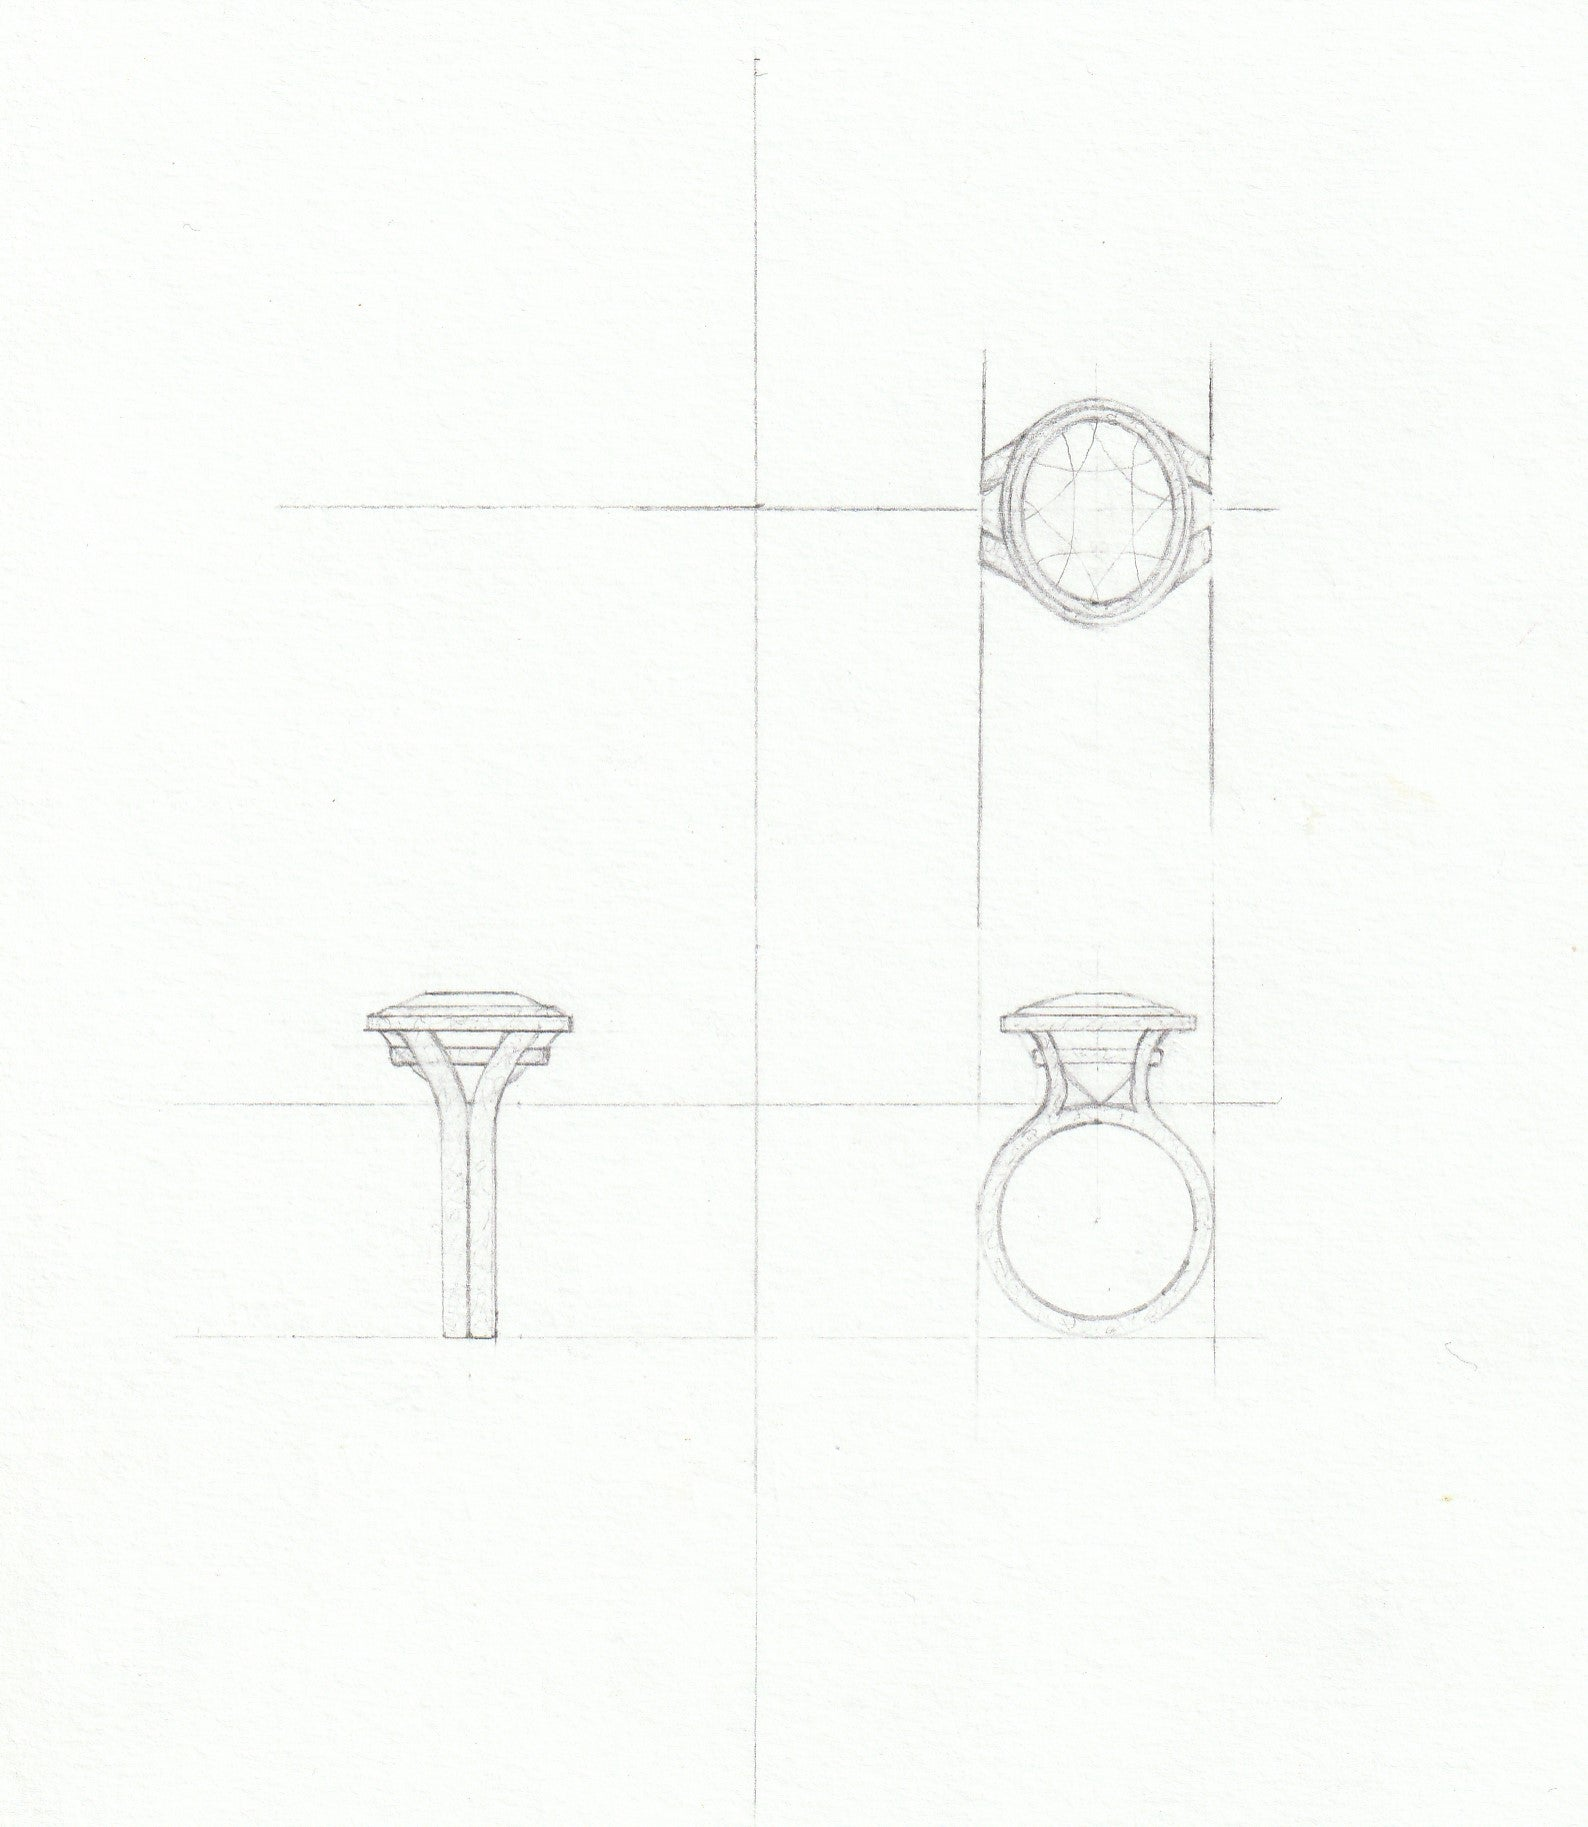 Design process, sketches of proposed design for bespoke tourmaline ring